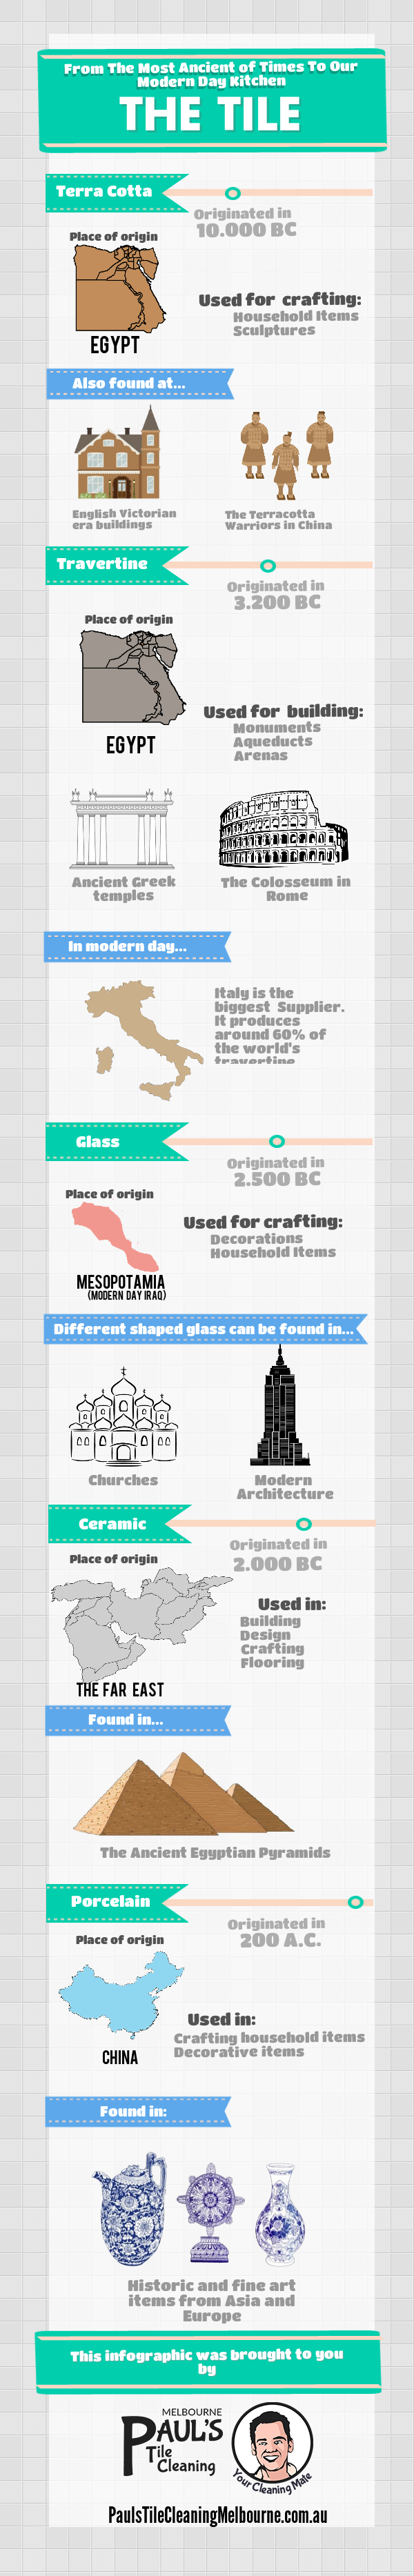 The long history of the modern tiles, presented in an informative infographic.